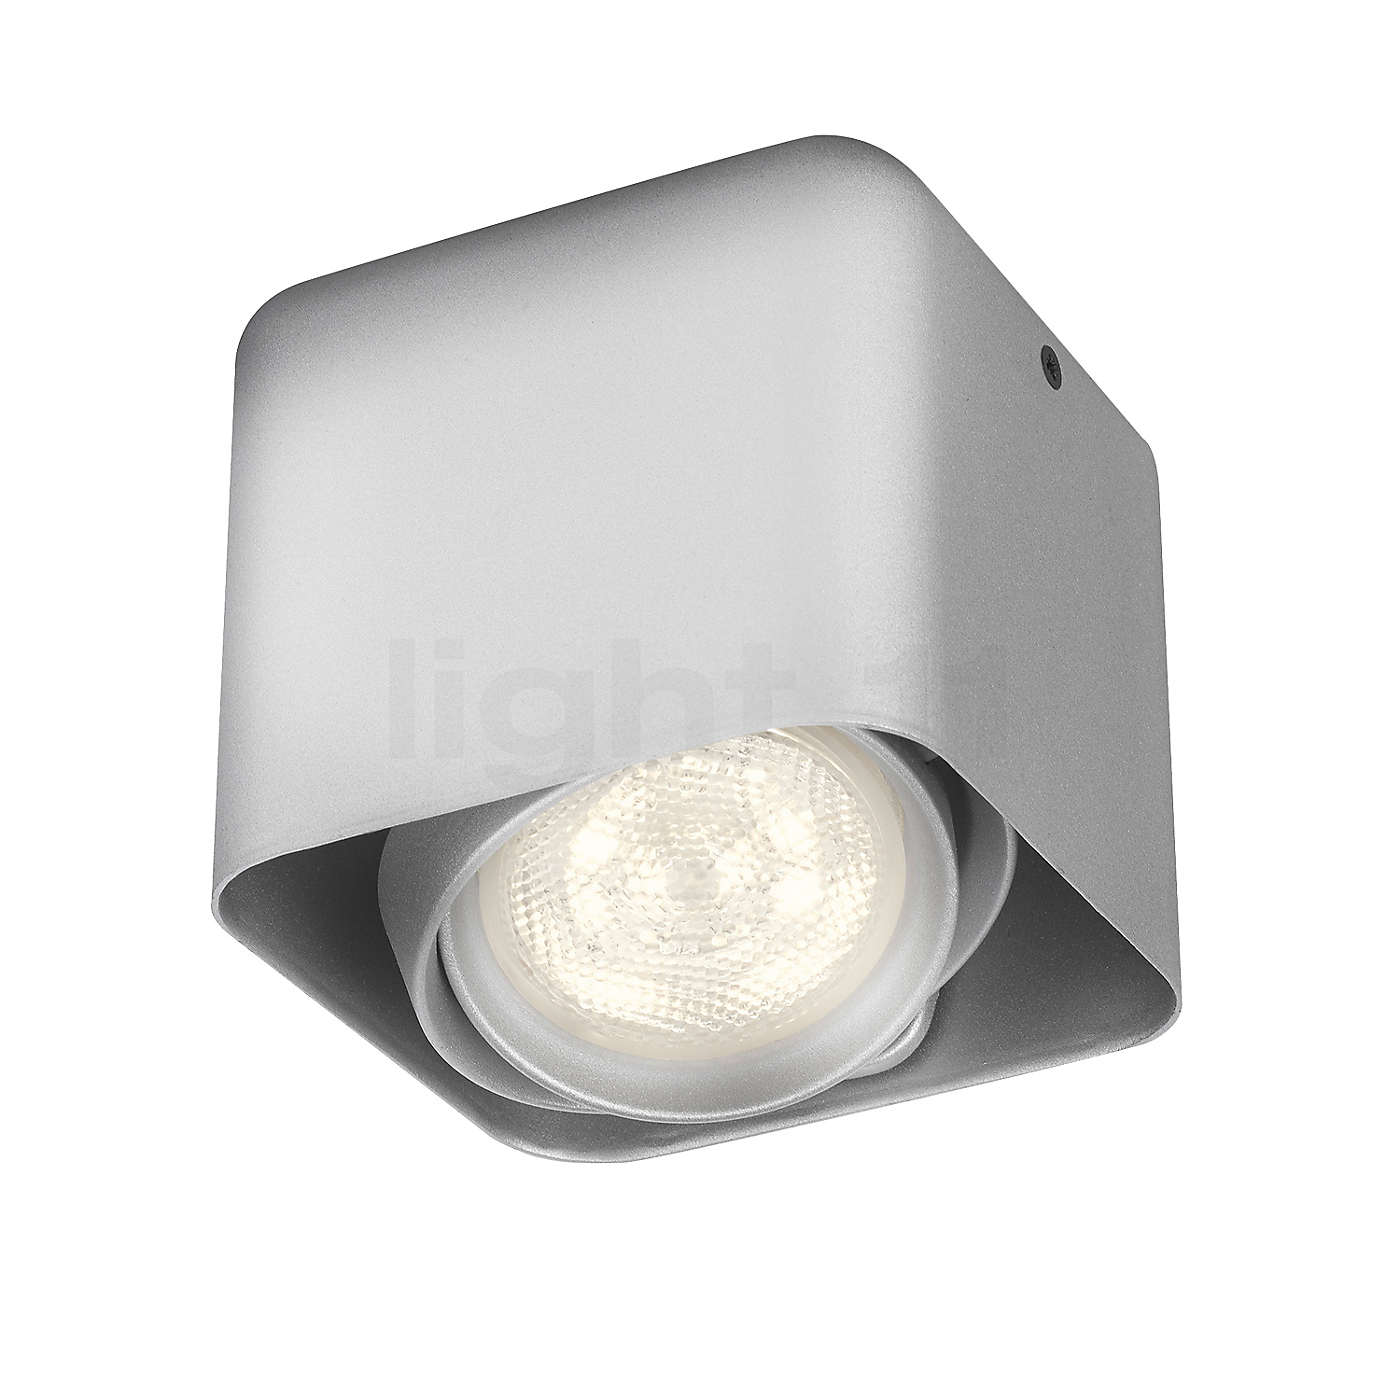 Lampadario soffitto led: lampada da soffitto led folia 7422 ...